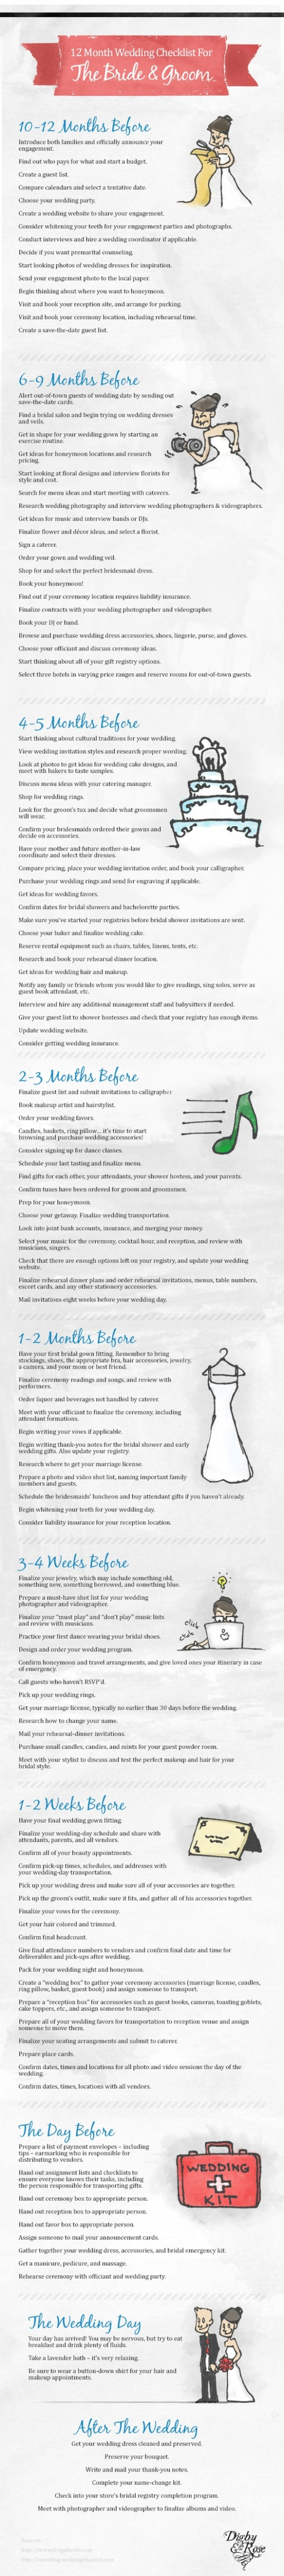 12 Month Wedding Checklist!